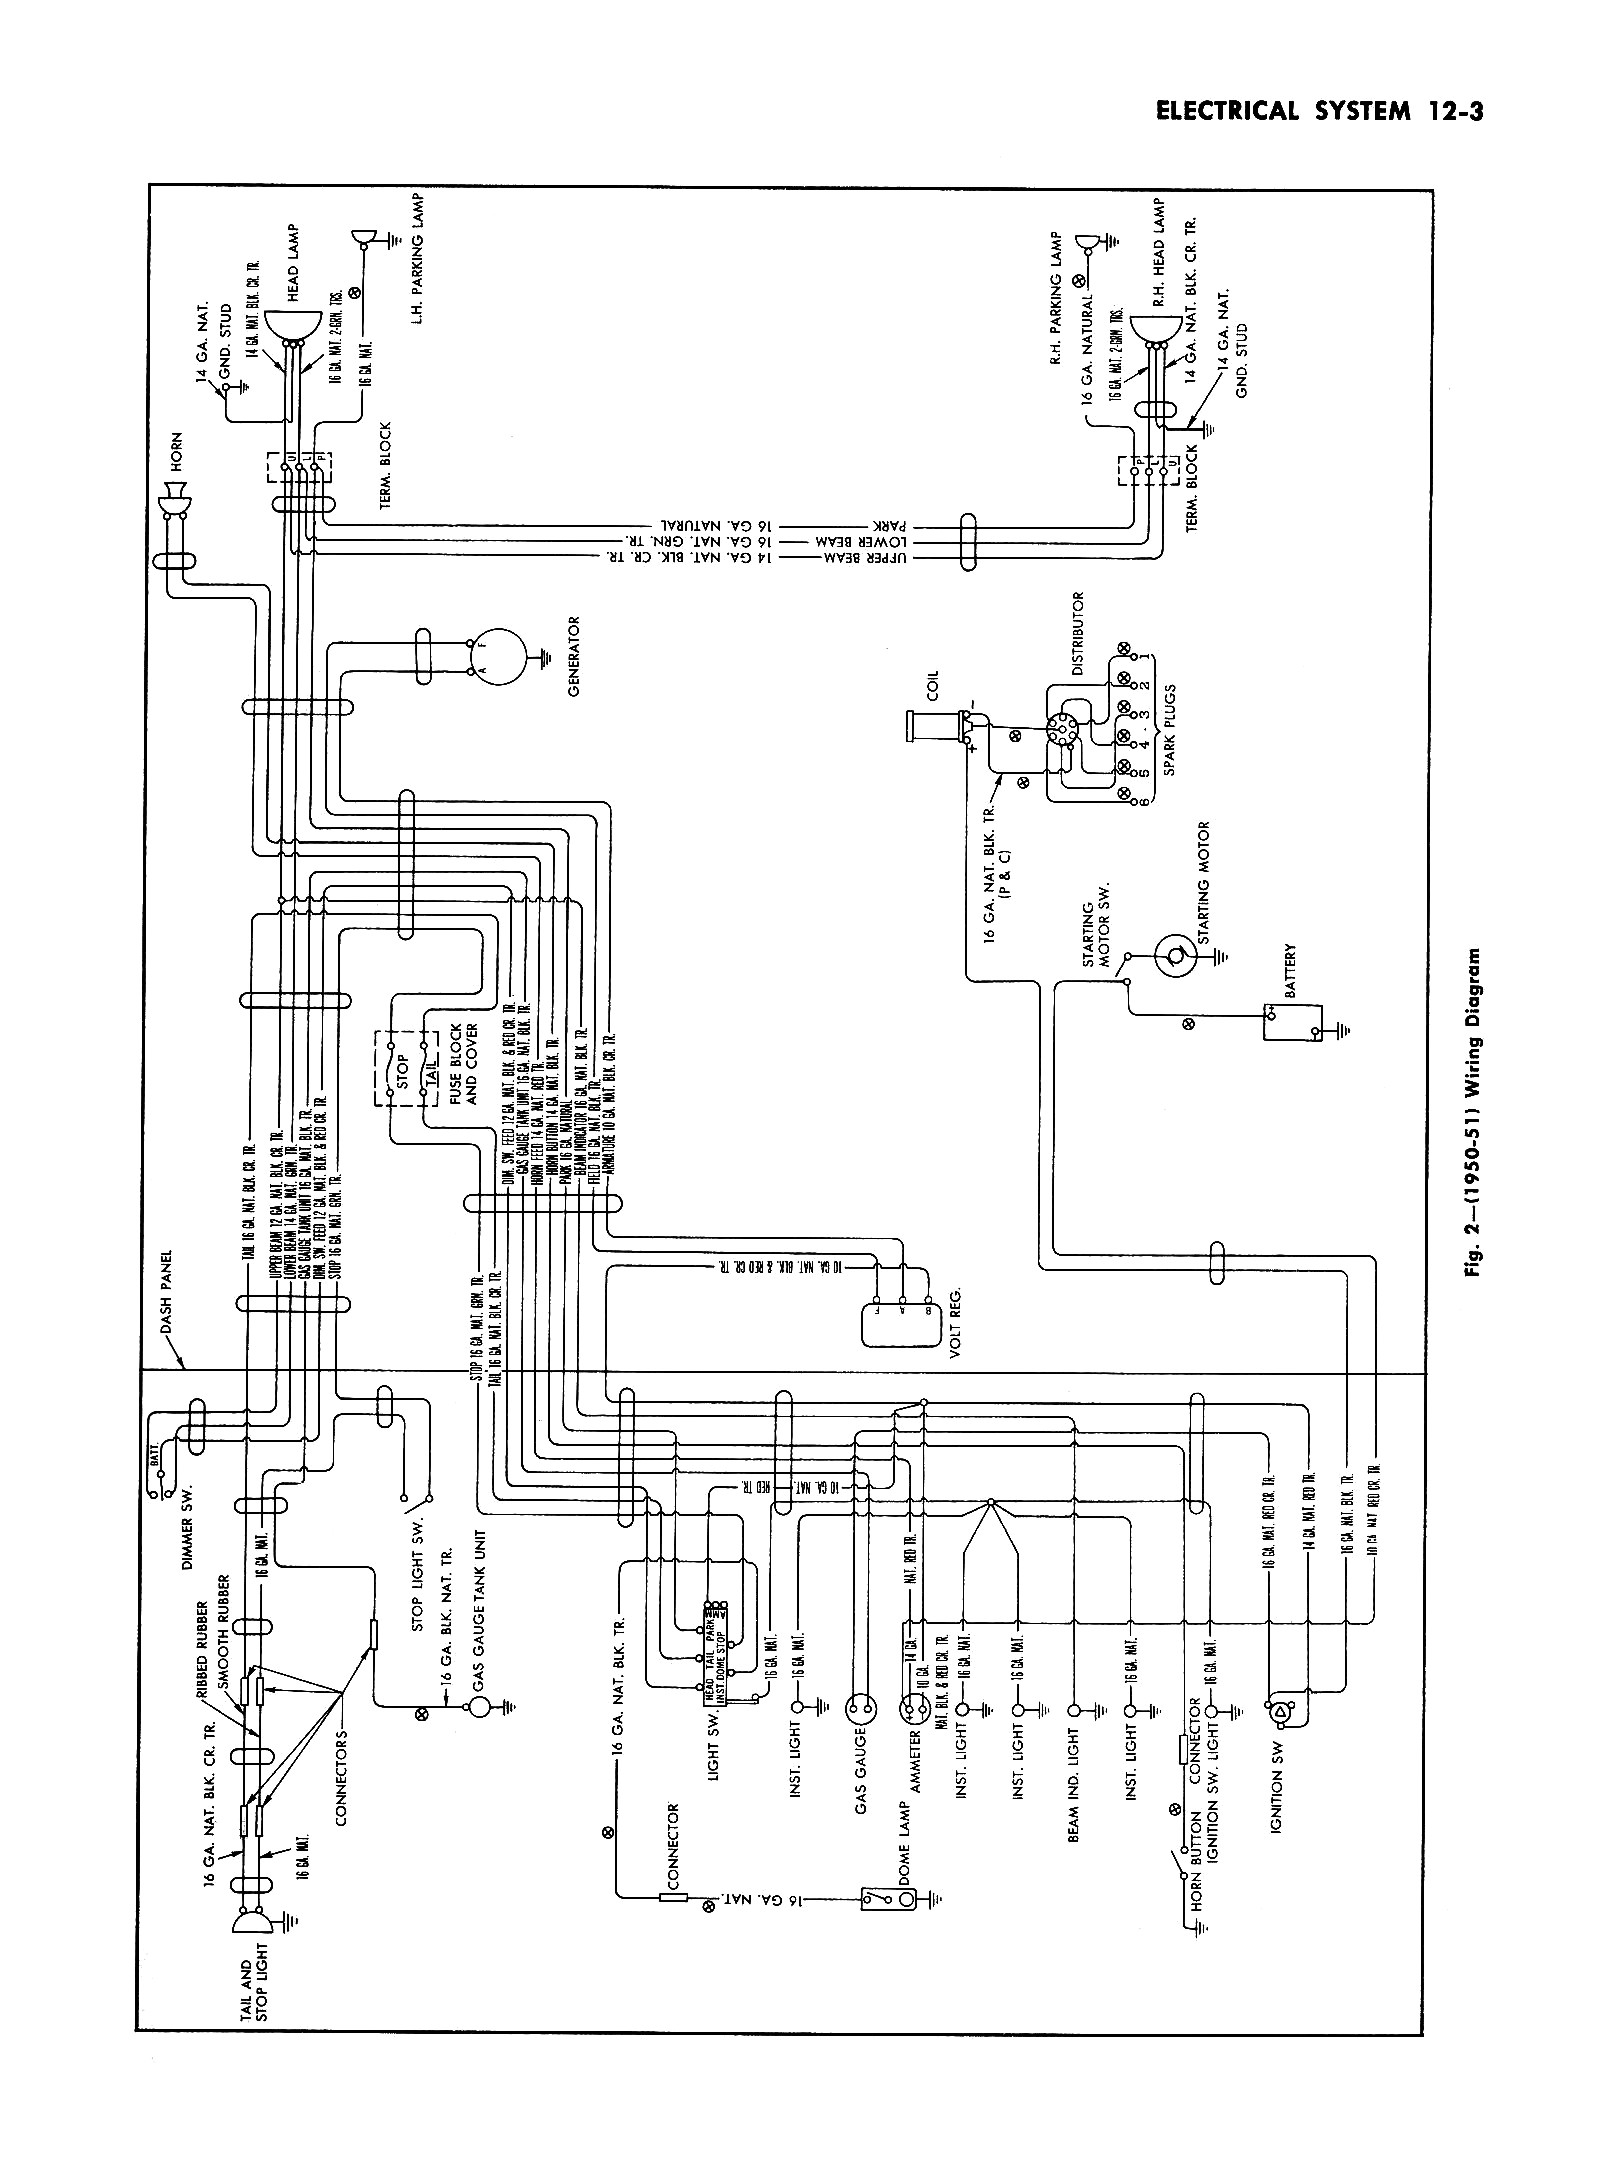 1950 oldsmobile 98 wiring diagram